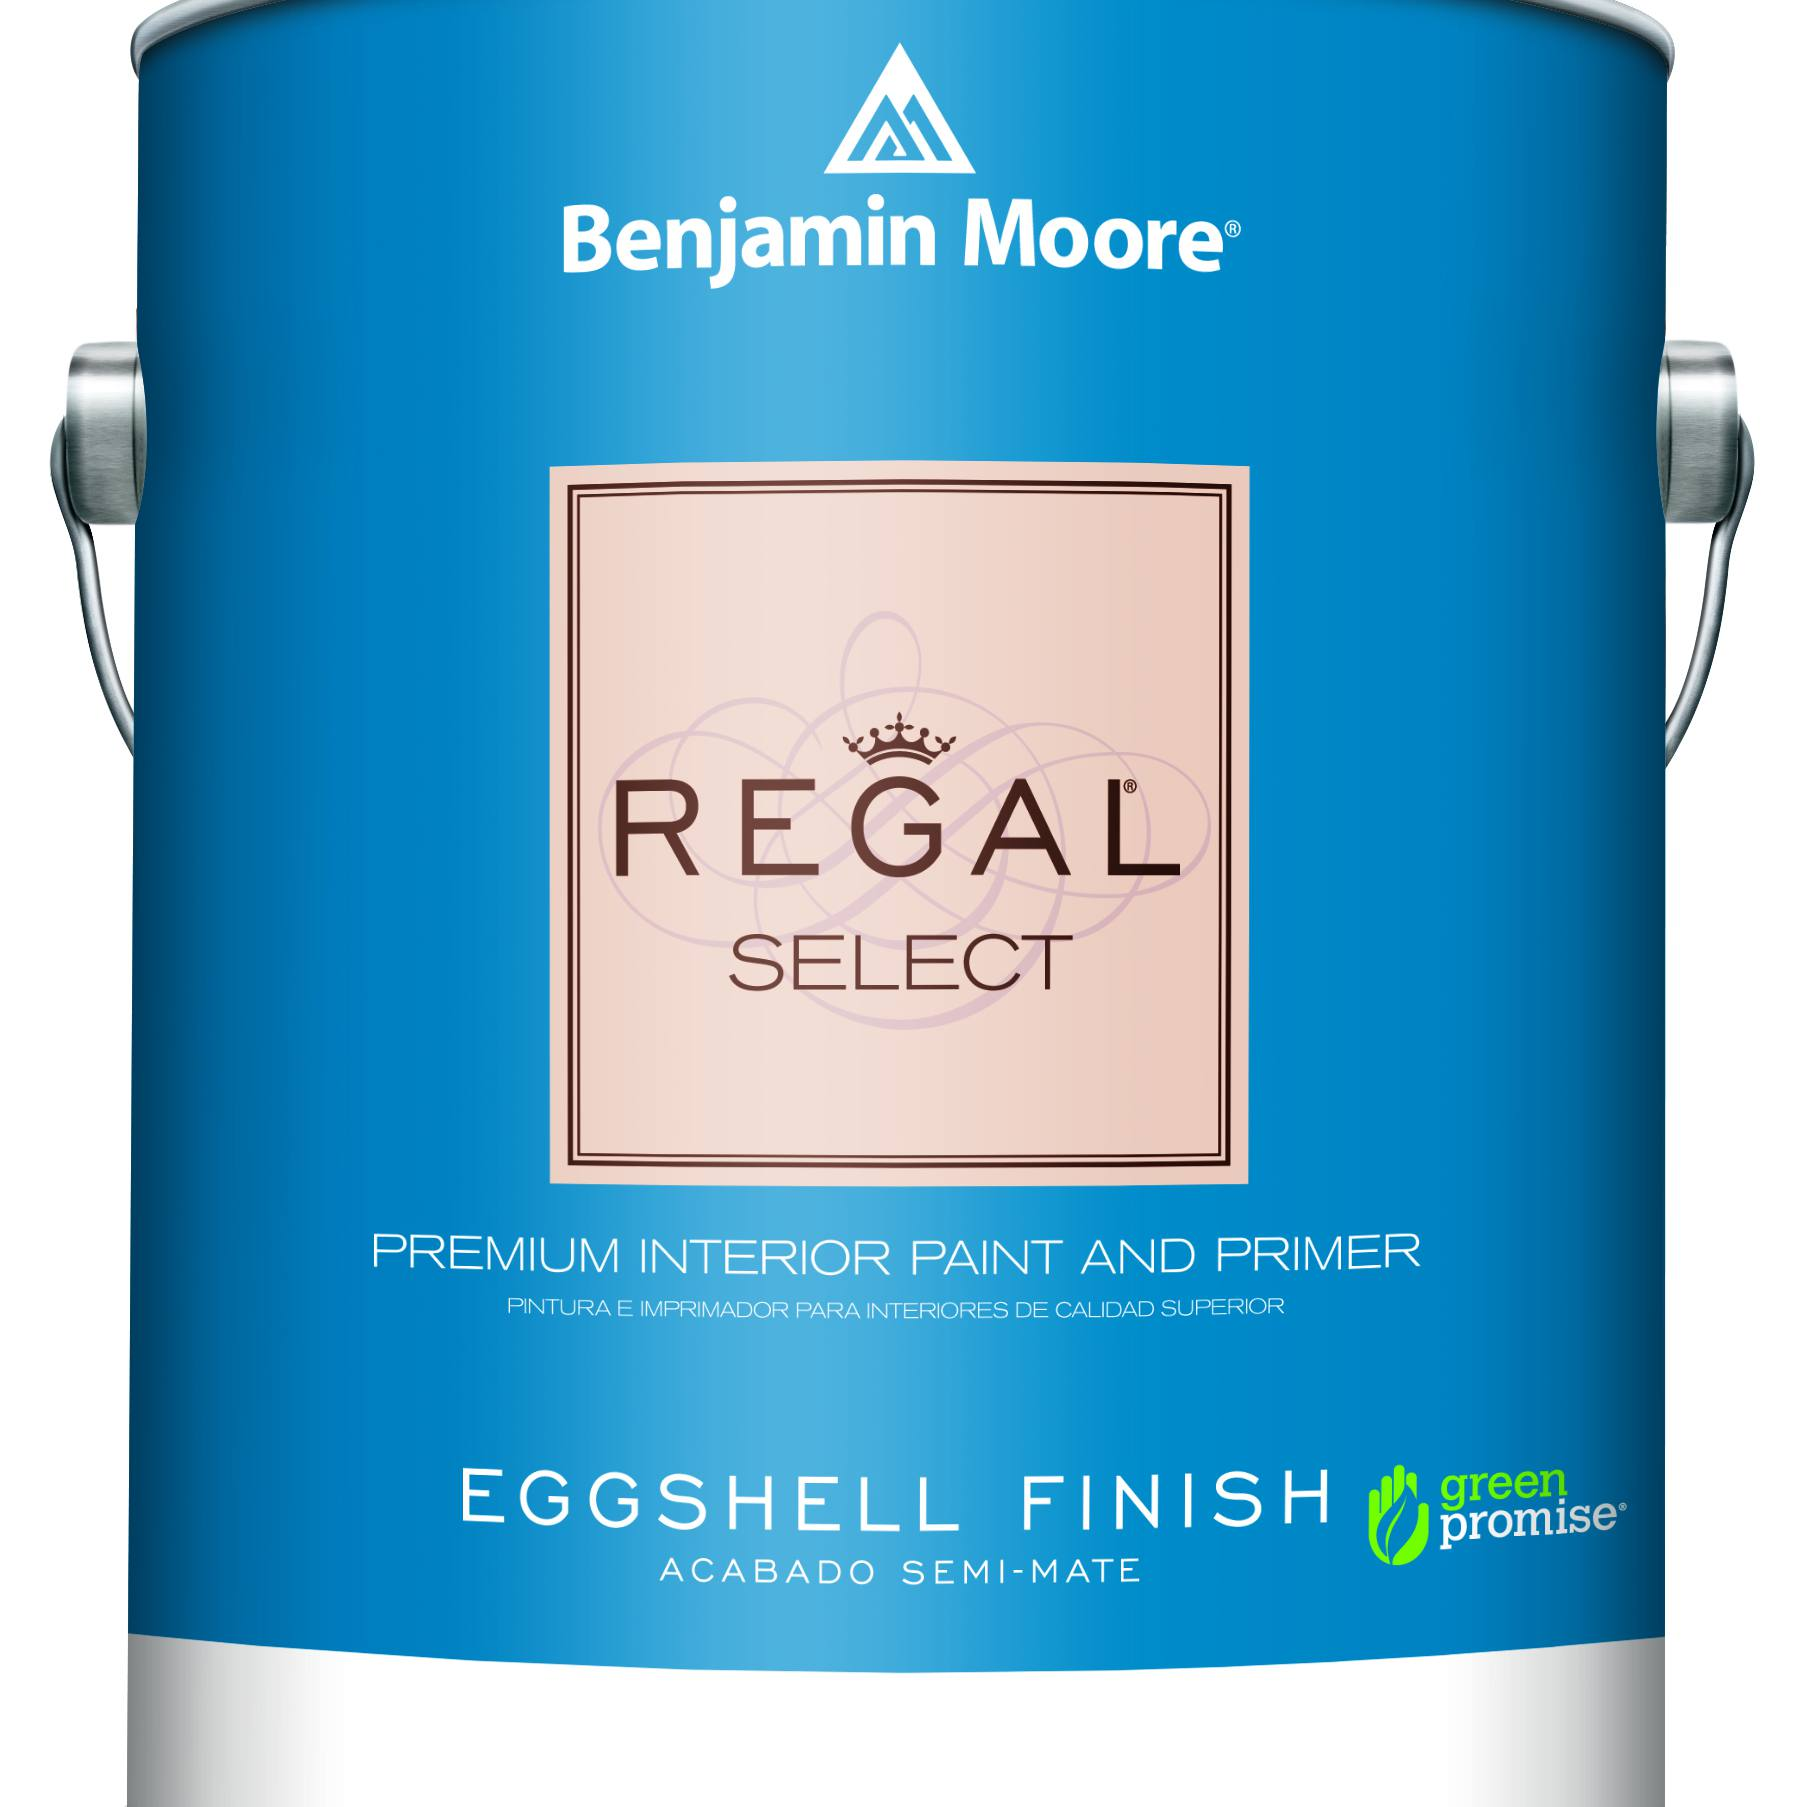 Benjamin moore interior paint brands Best brand of paint for interior walls